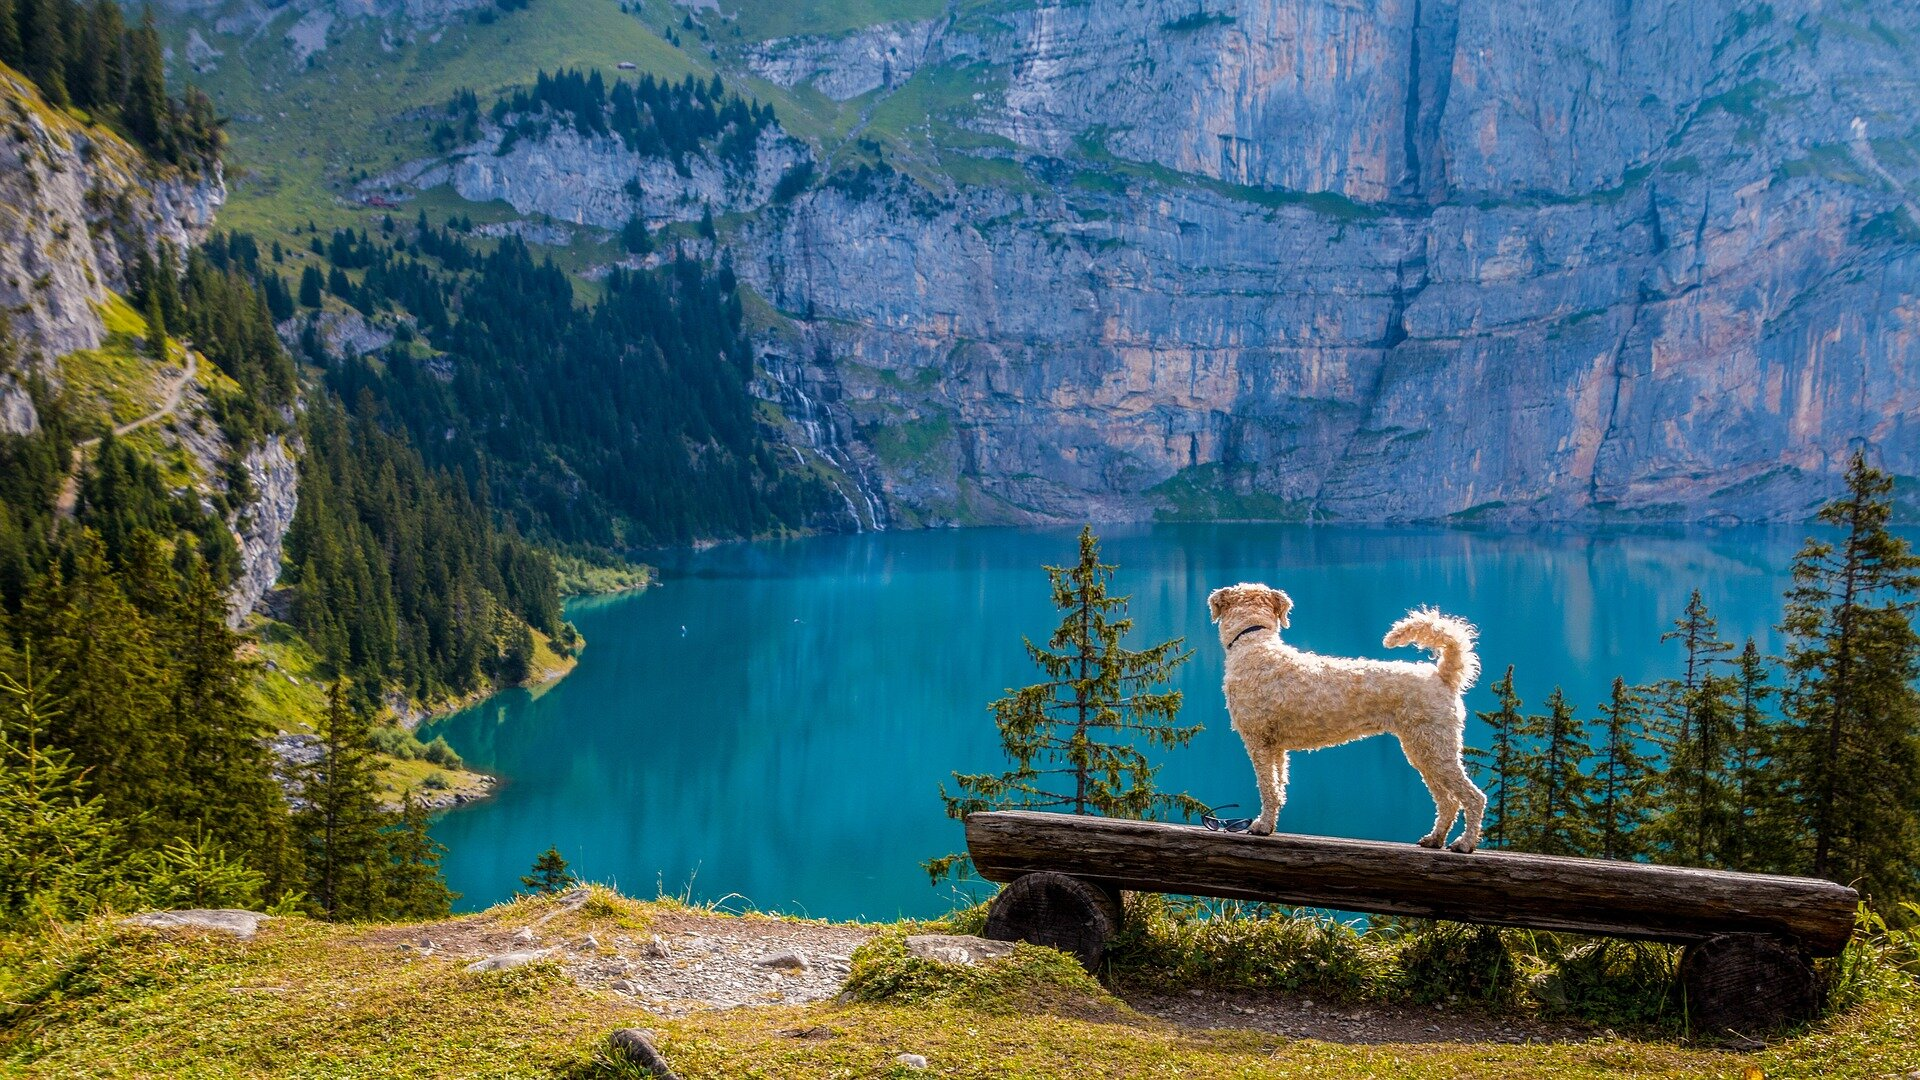 Dog overlooking mountainside lake